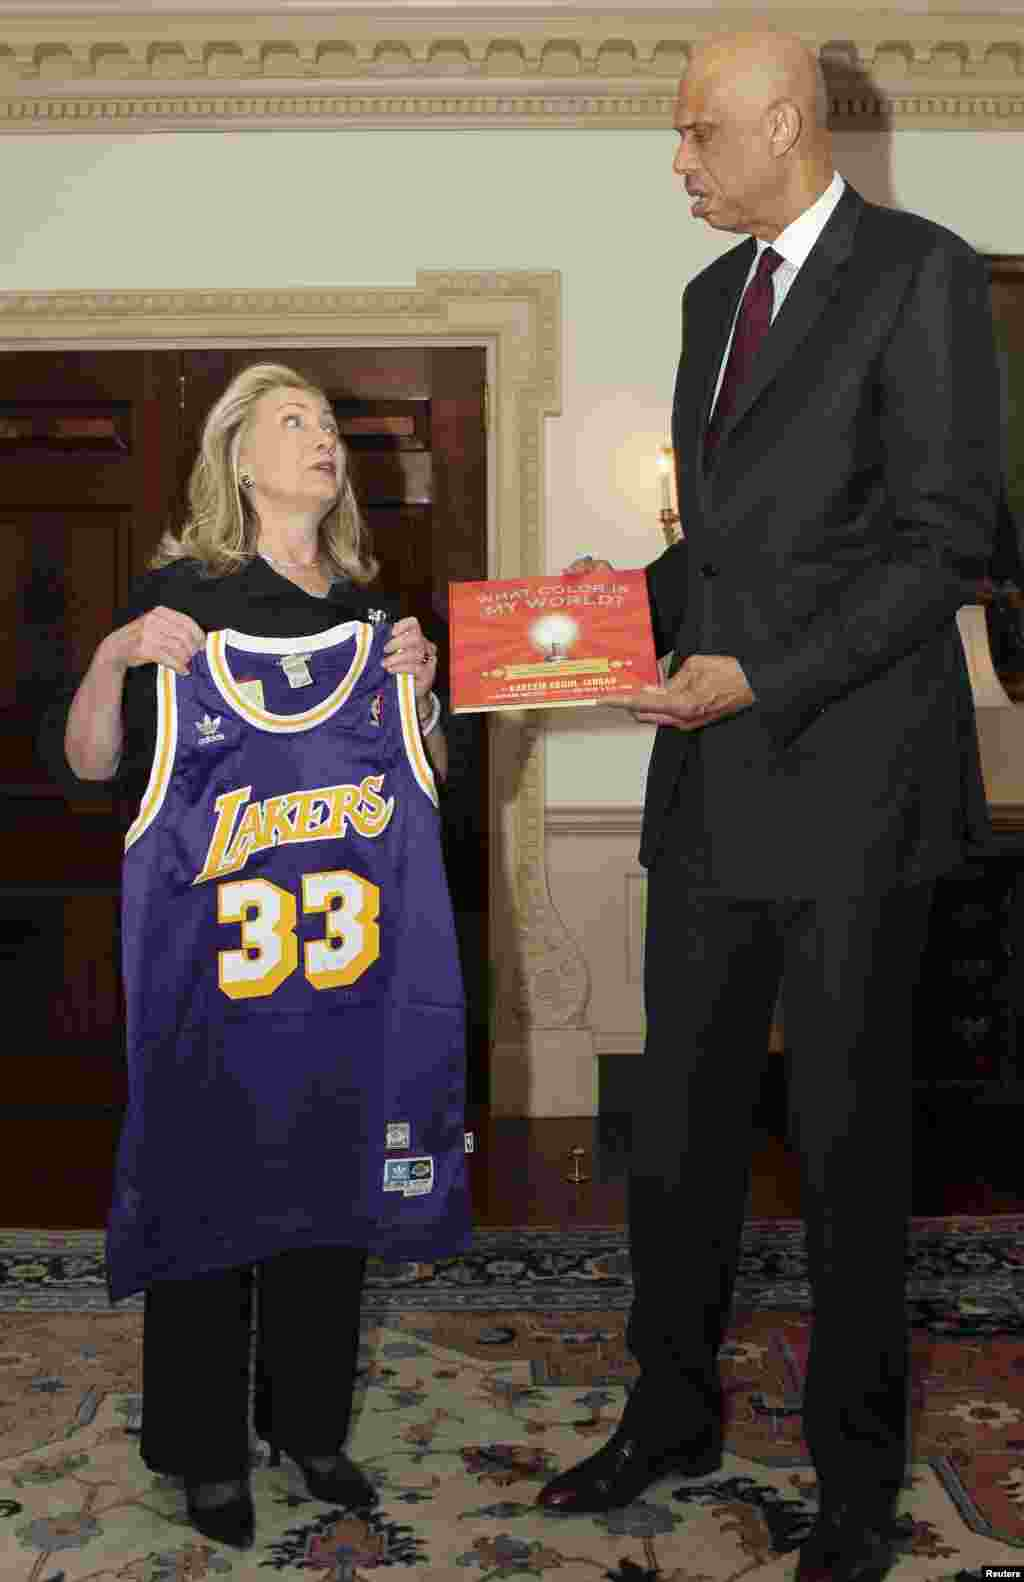 Clinton (left) accepts a Los Angeles Lakers uniform from NBA legend and State Department cultural ambassador Kareem Abdul-Jabbar during their meeting in Washington on January 18, 2012.